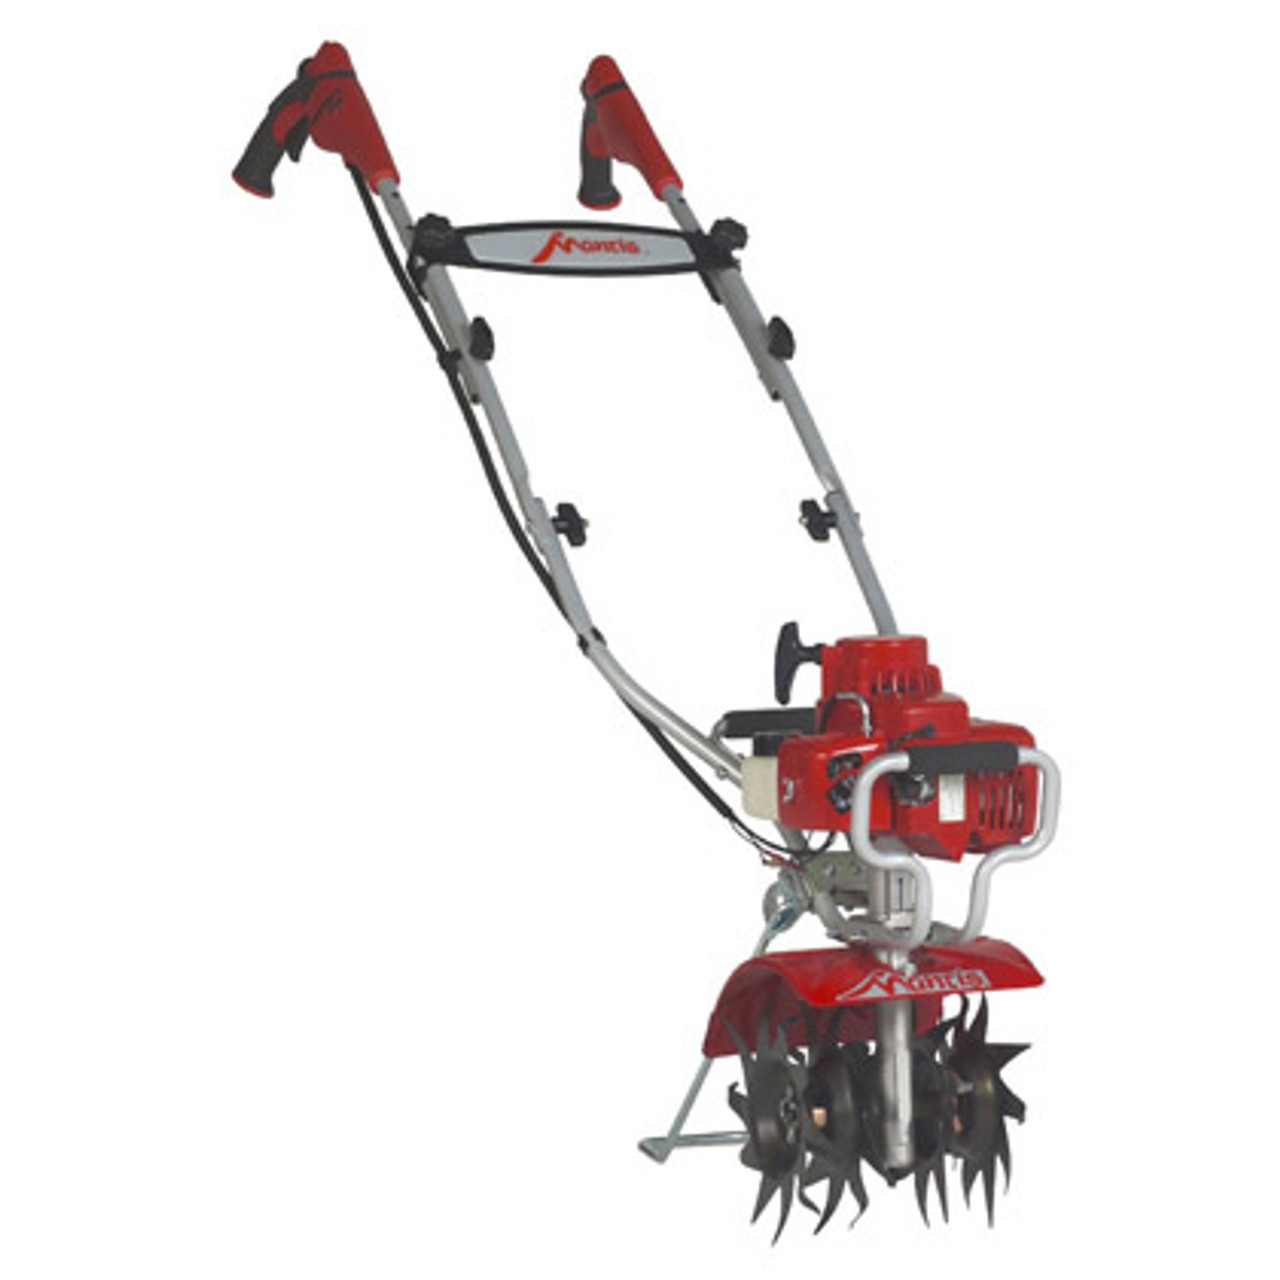 """Mantis 7234-12-02 Deluxe 9"""" 21.2cc 2-Cycle Cultivator/Mini Tiller Image"""